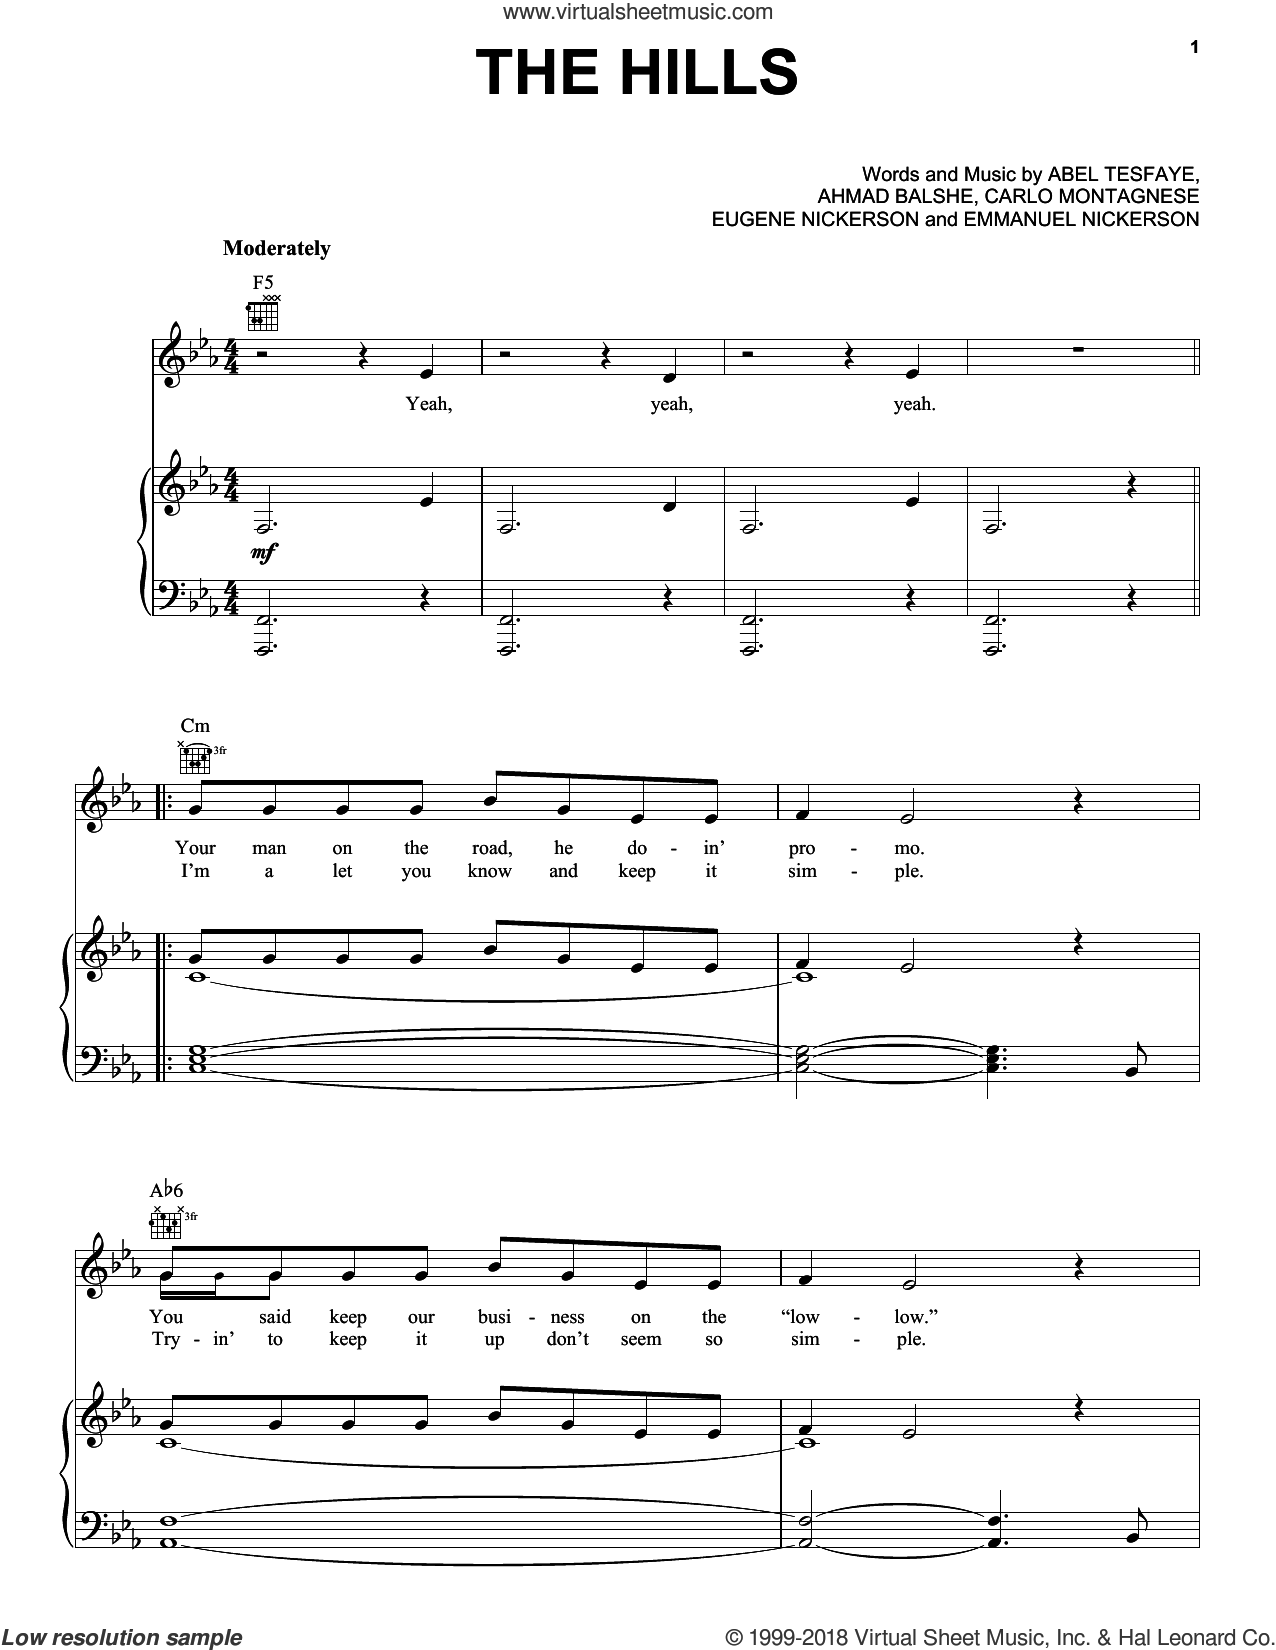 The Hills sheet music for voice, piano or guitar by The Weeknd, Abel Tesfaye, Ahmad Balshe, Carlo Montagnese, Emmanuel Nickerson and Eugene Nickerson, intermediate skill level